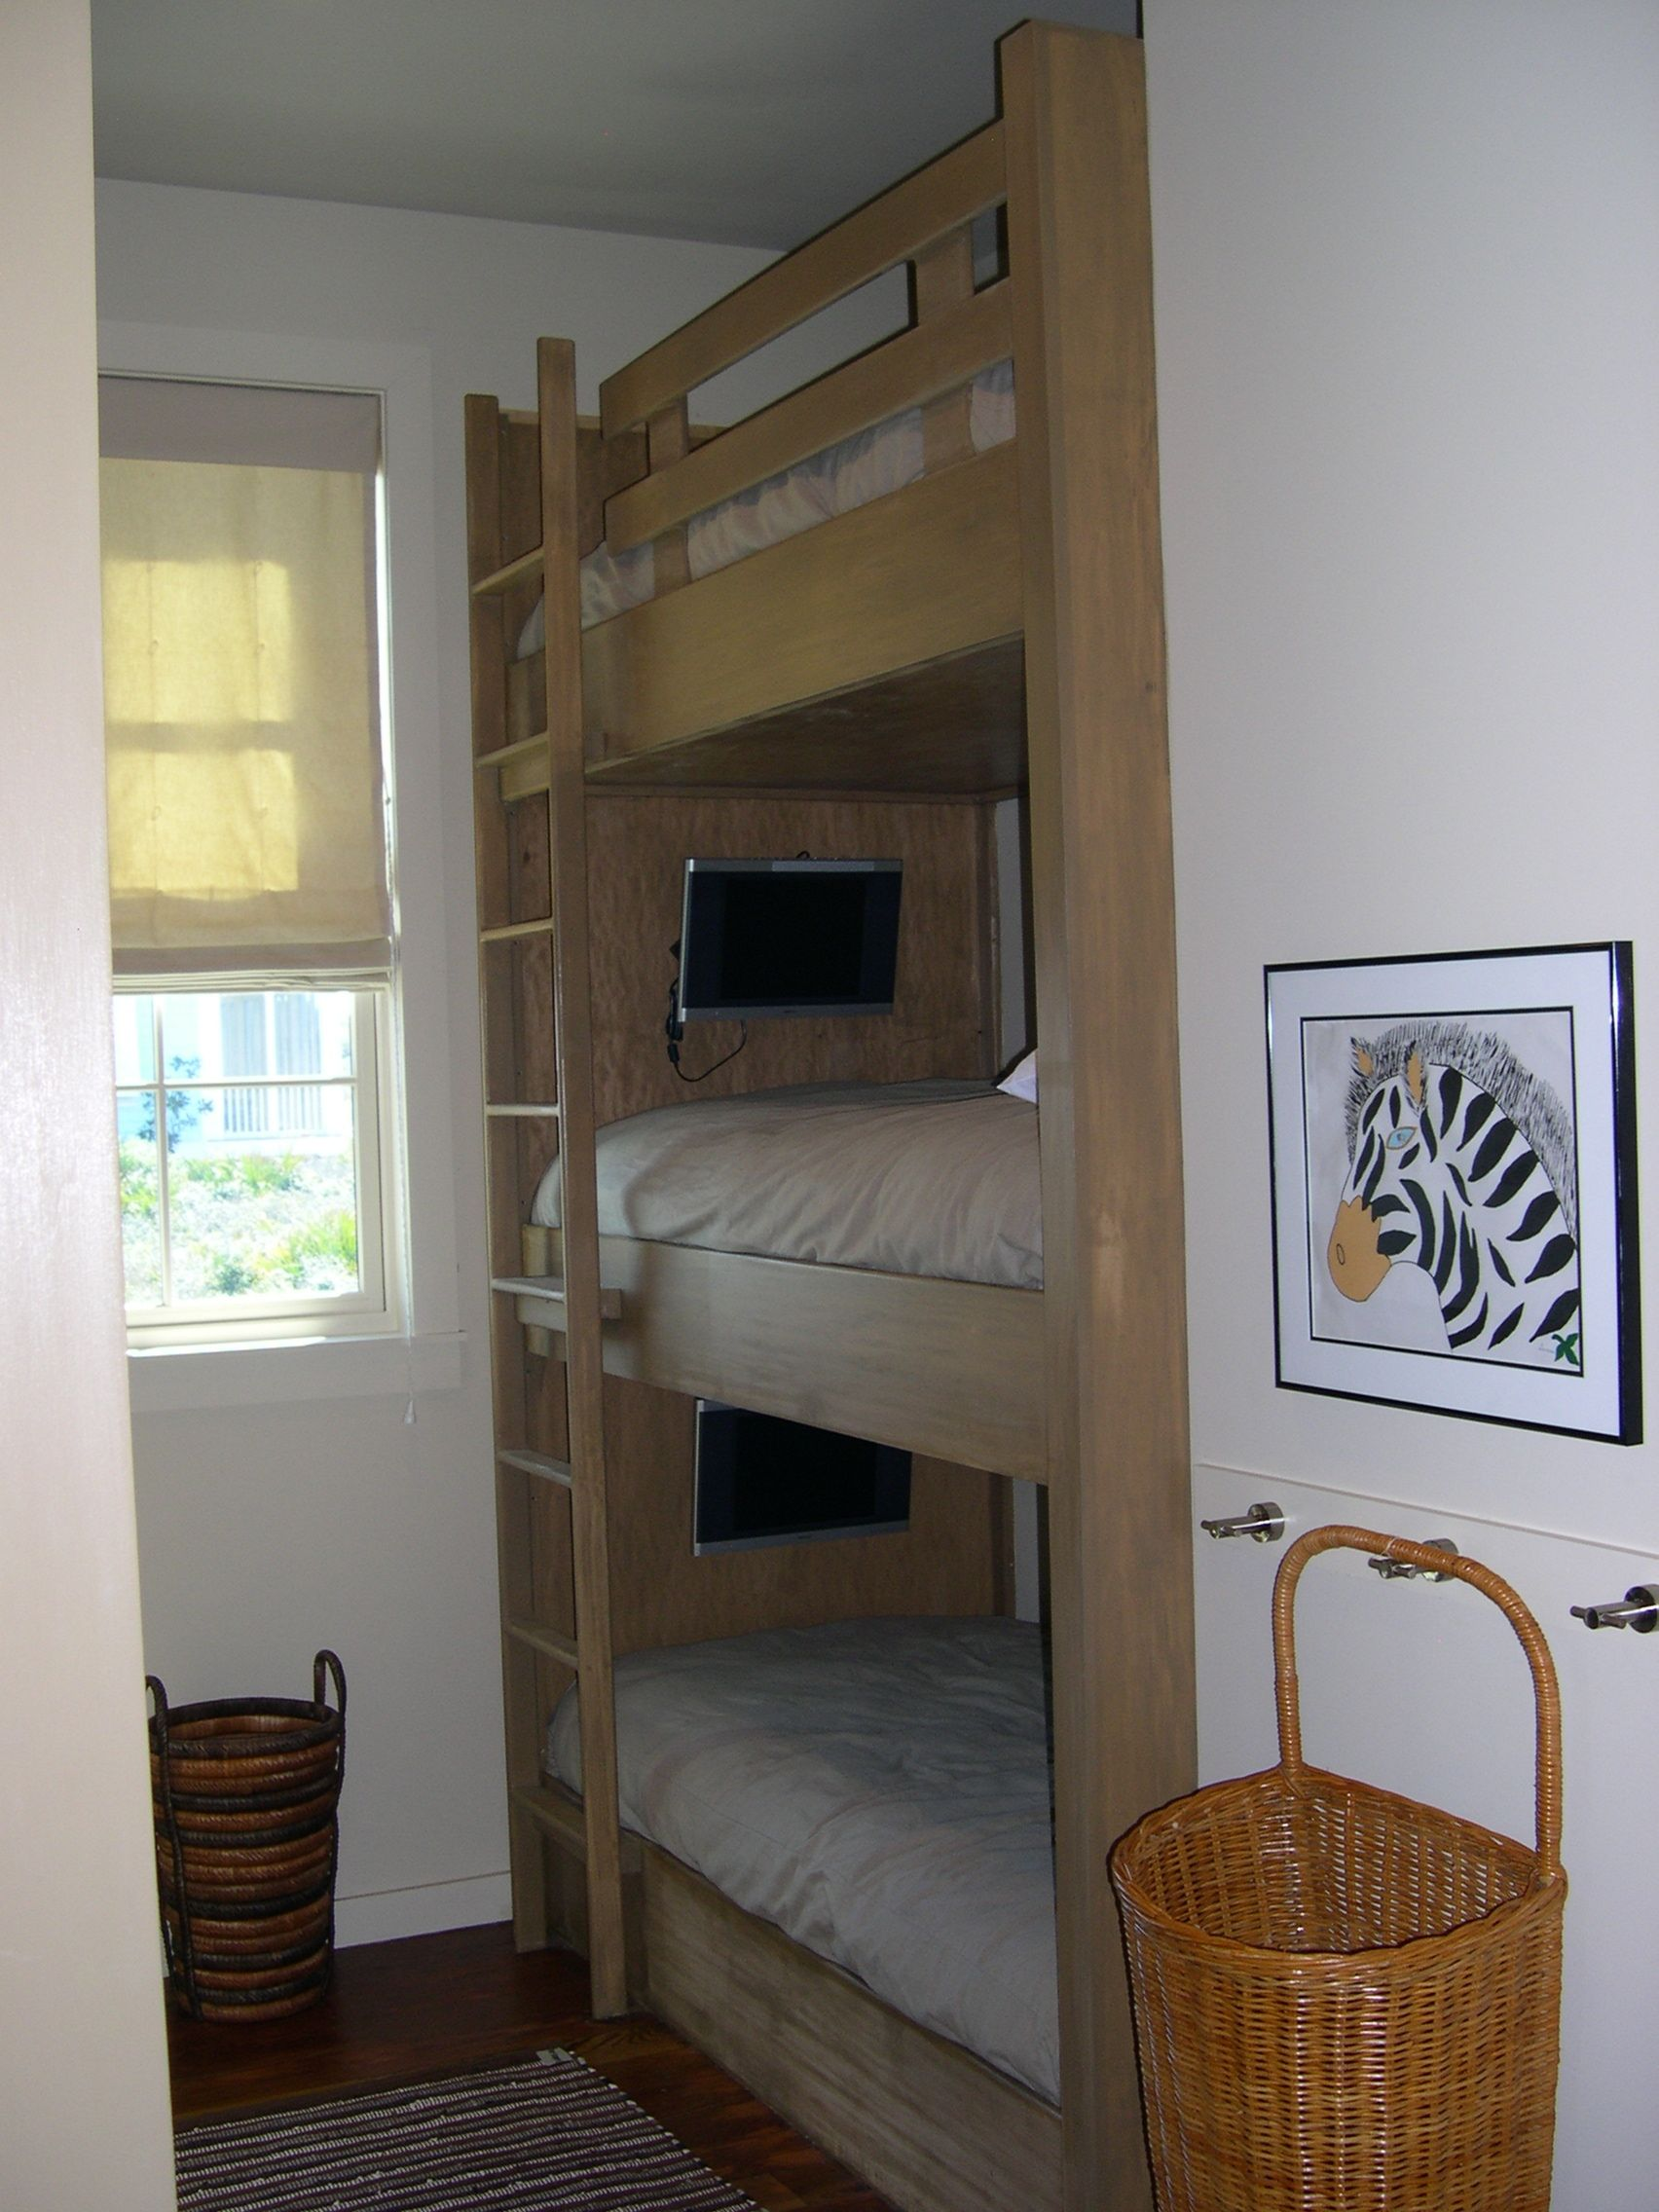 3 Tier Bunk Bed Would Be The Best In A Beach House Bunk